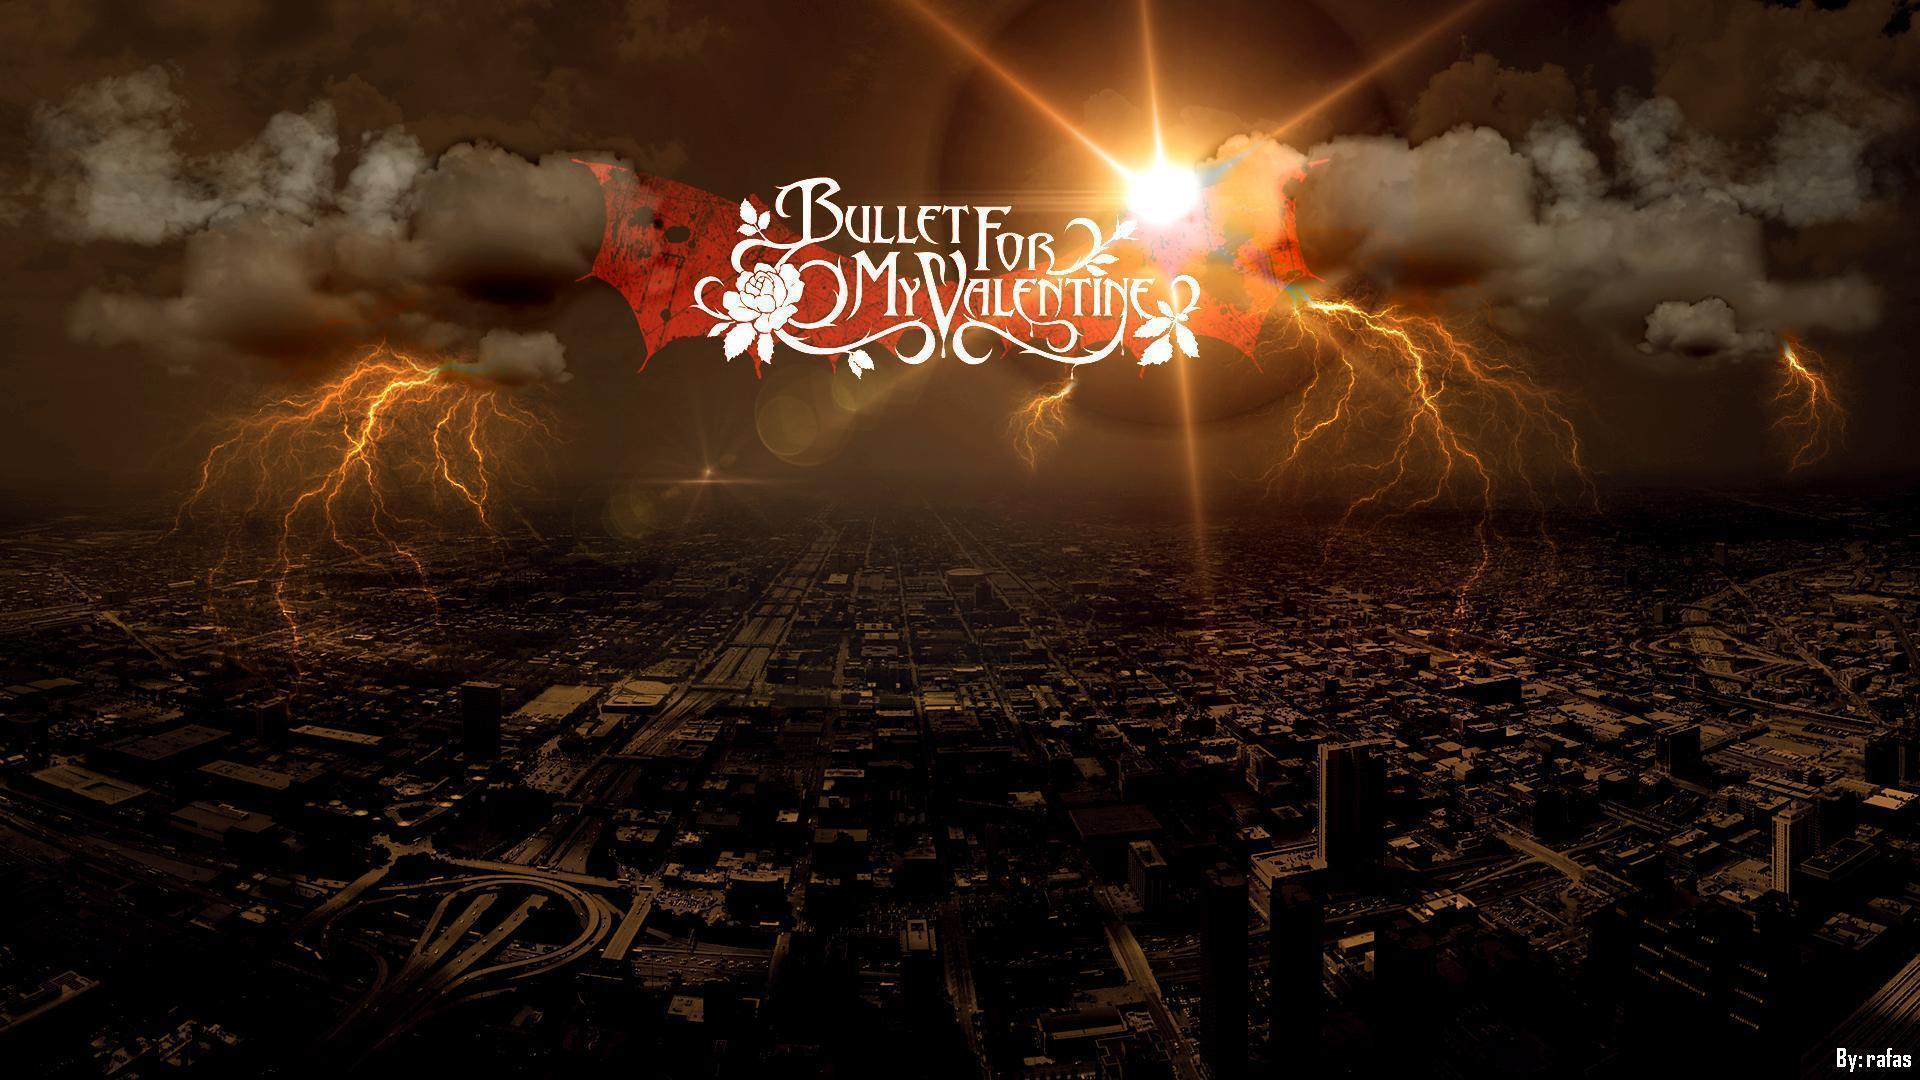 Bullet for my valentine Wallpapers, Backgrounds, Images ...